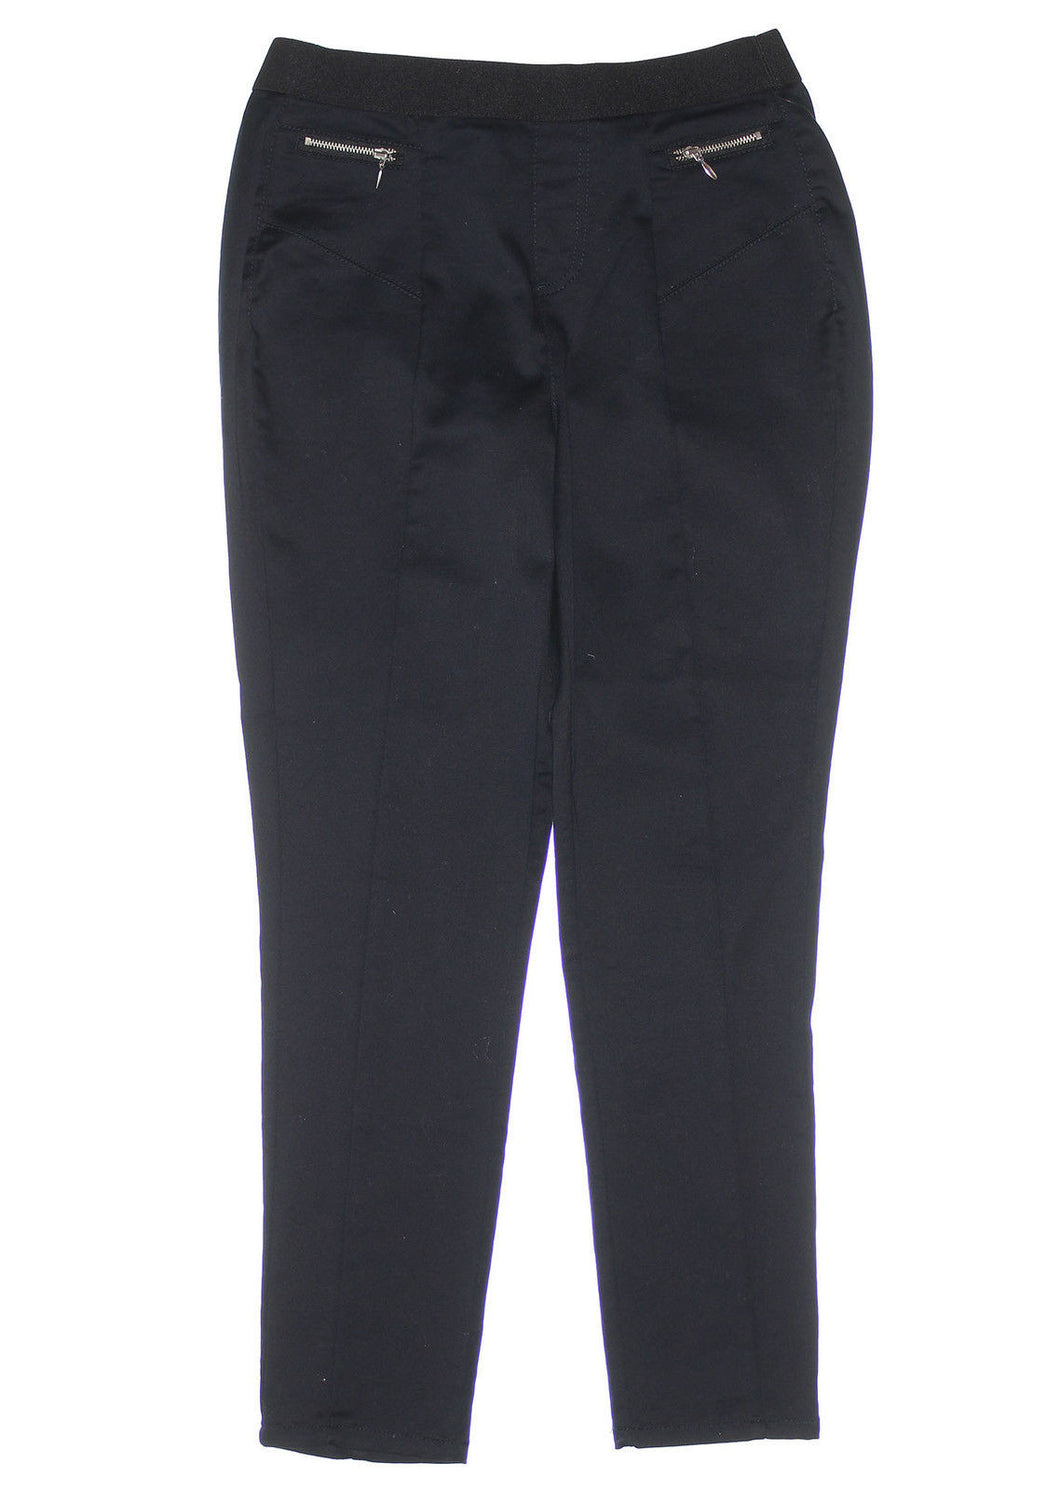 Style & Co Black Curvy Fit Skinny Leg Pull On Pants